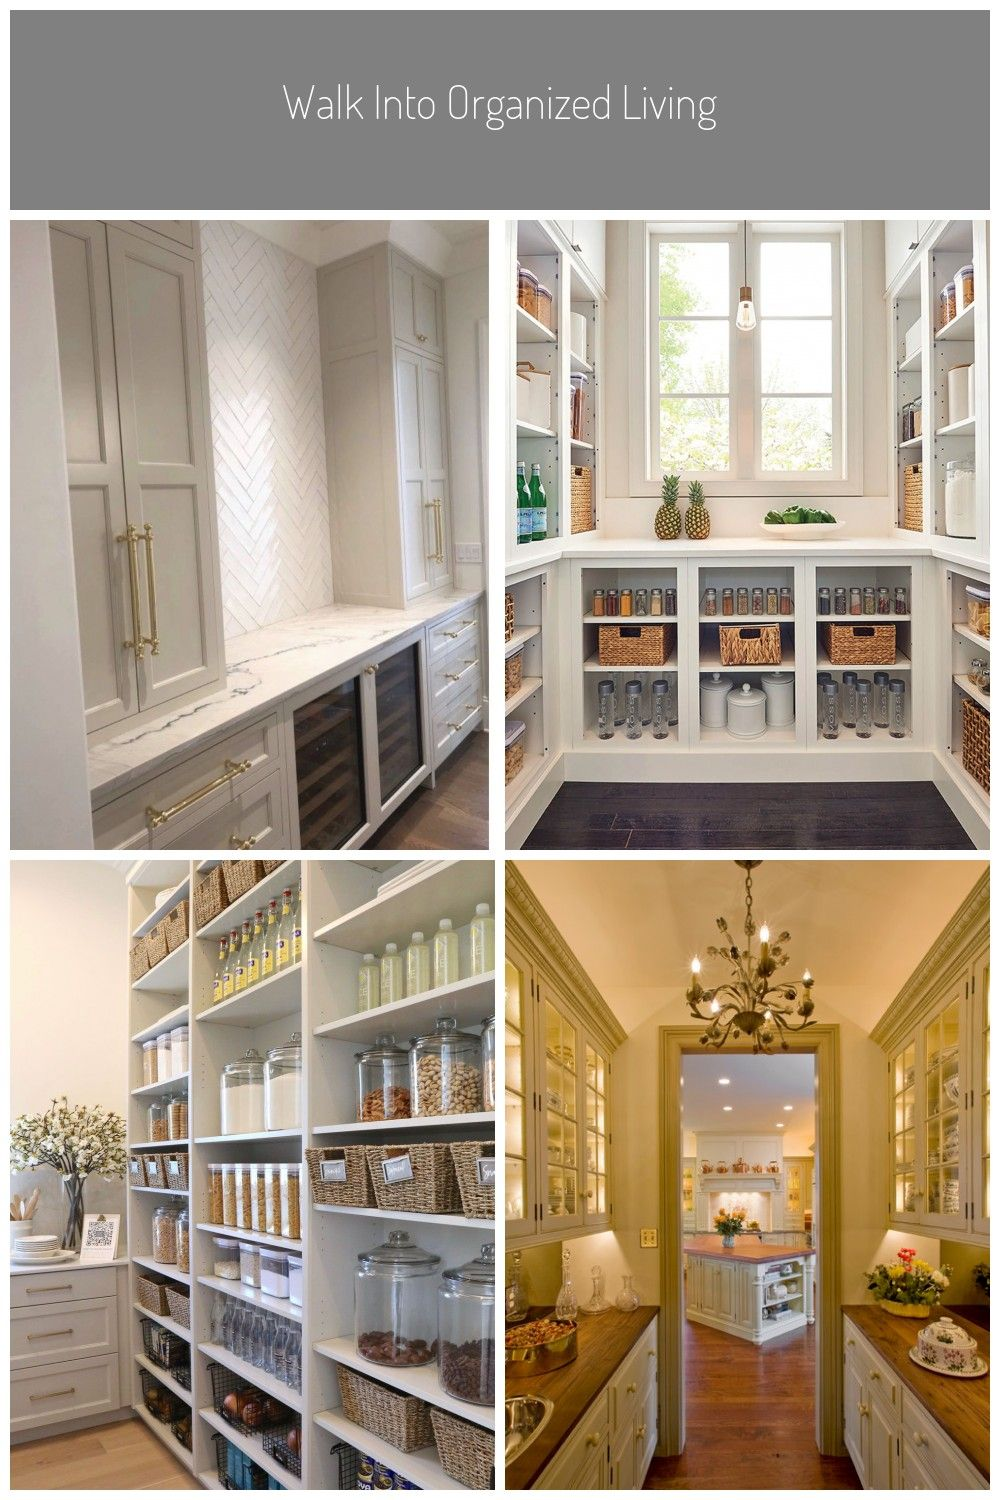 Butler Pantry Ideas Design Farmhouseupgrade Your Pantry And Get Organizedsee Our Recap Of Beautiful Home In 2020 Kitchen Inspiration Design Pantry Design Butler Pantry